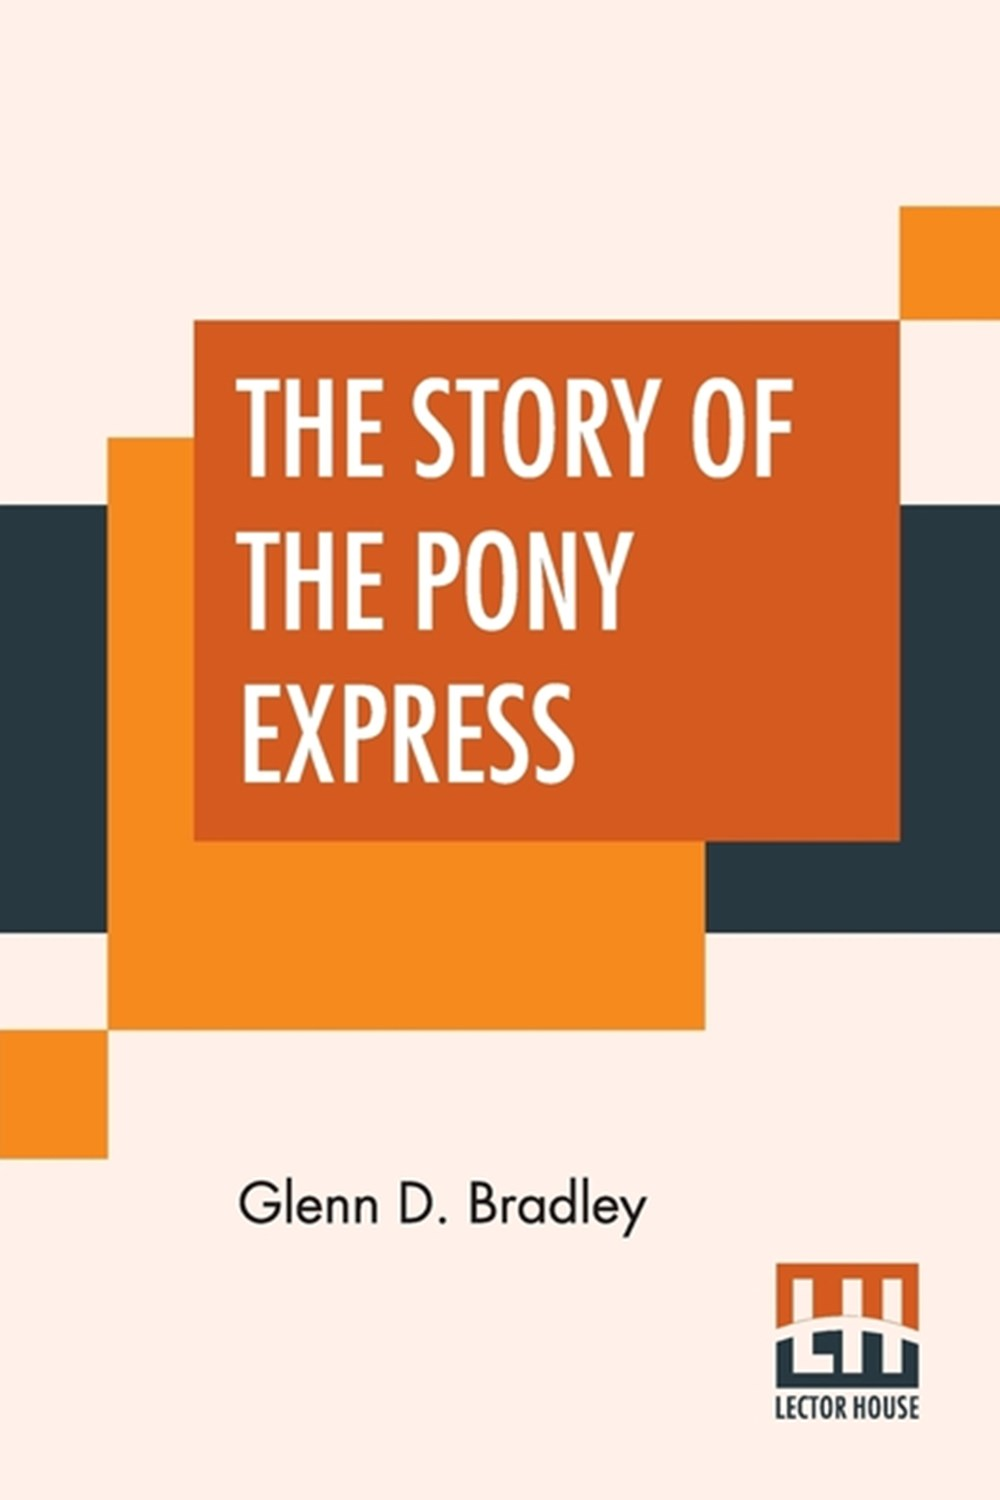 Story Of The Pony Express An Account Of The Most Remarkable Mail Service Ever In Existence, And Its